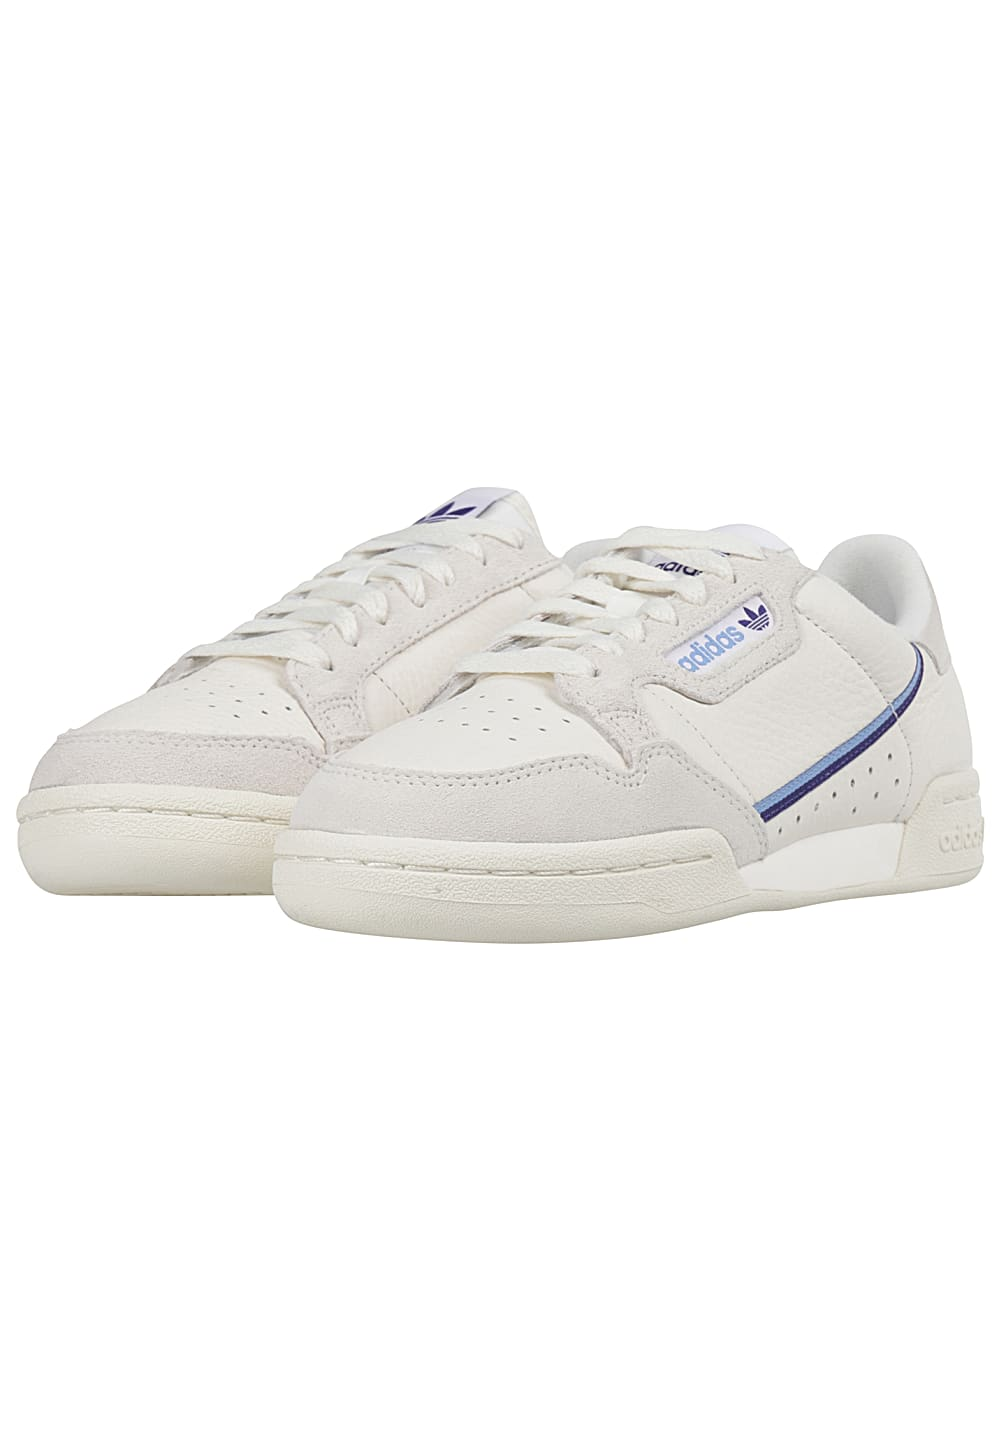 ADIDAS ORIGINALS Continental 80 - Baskets pour Femme - Beige